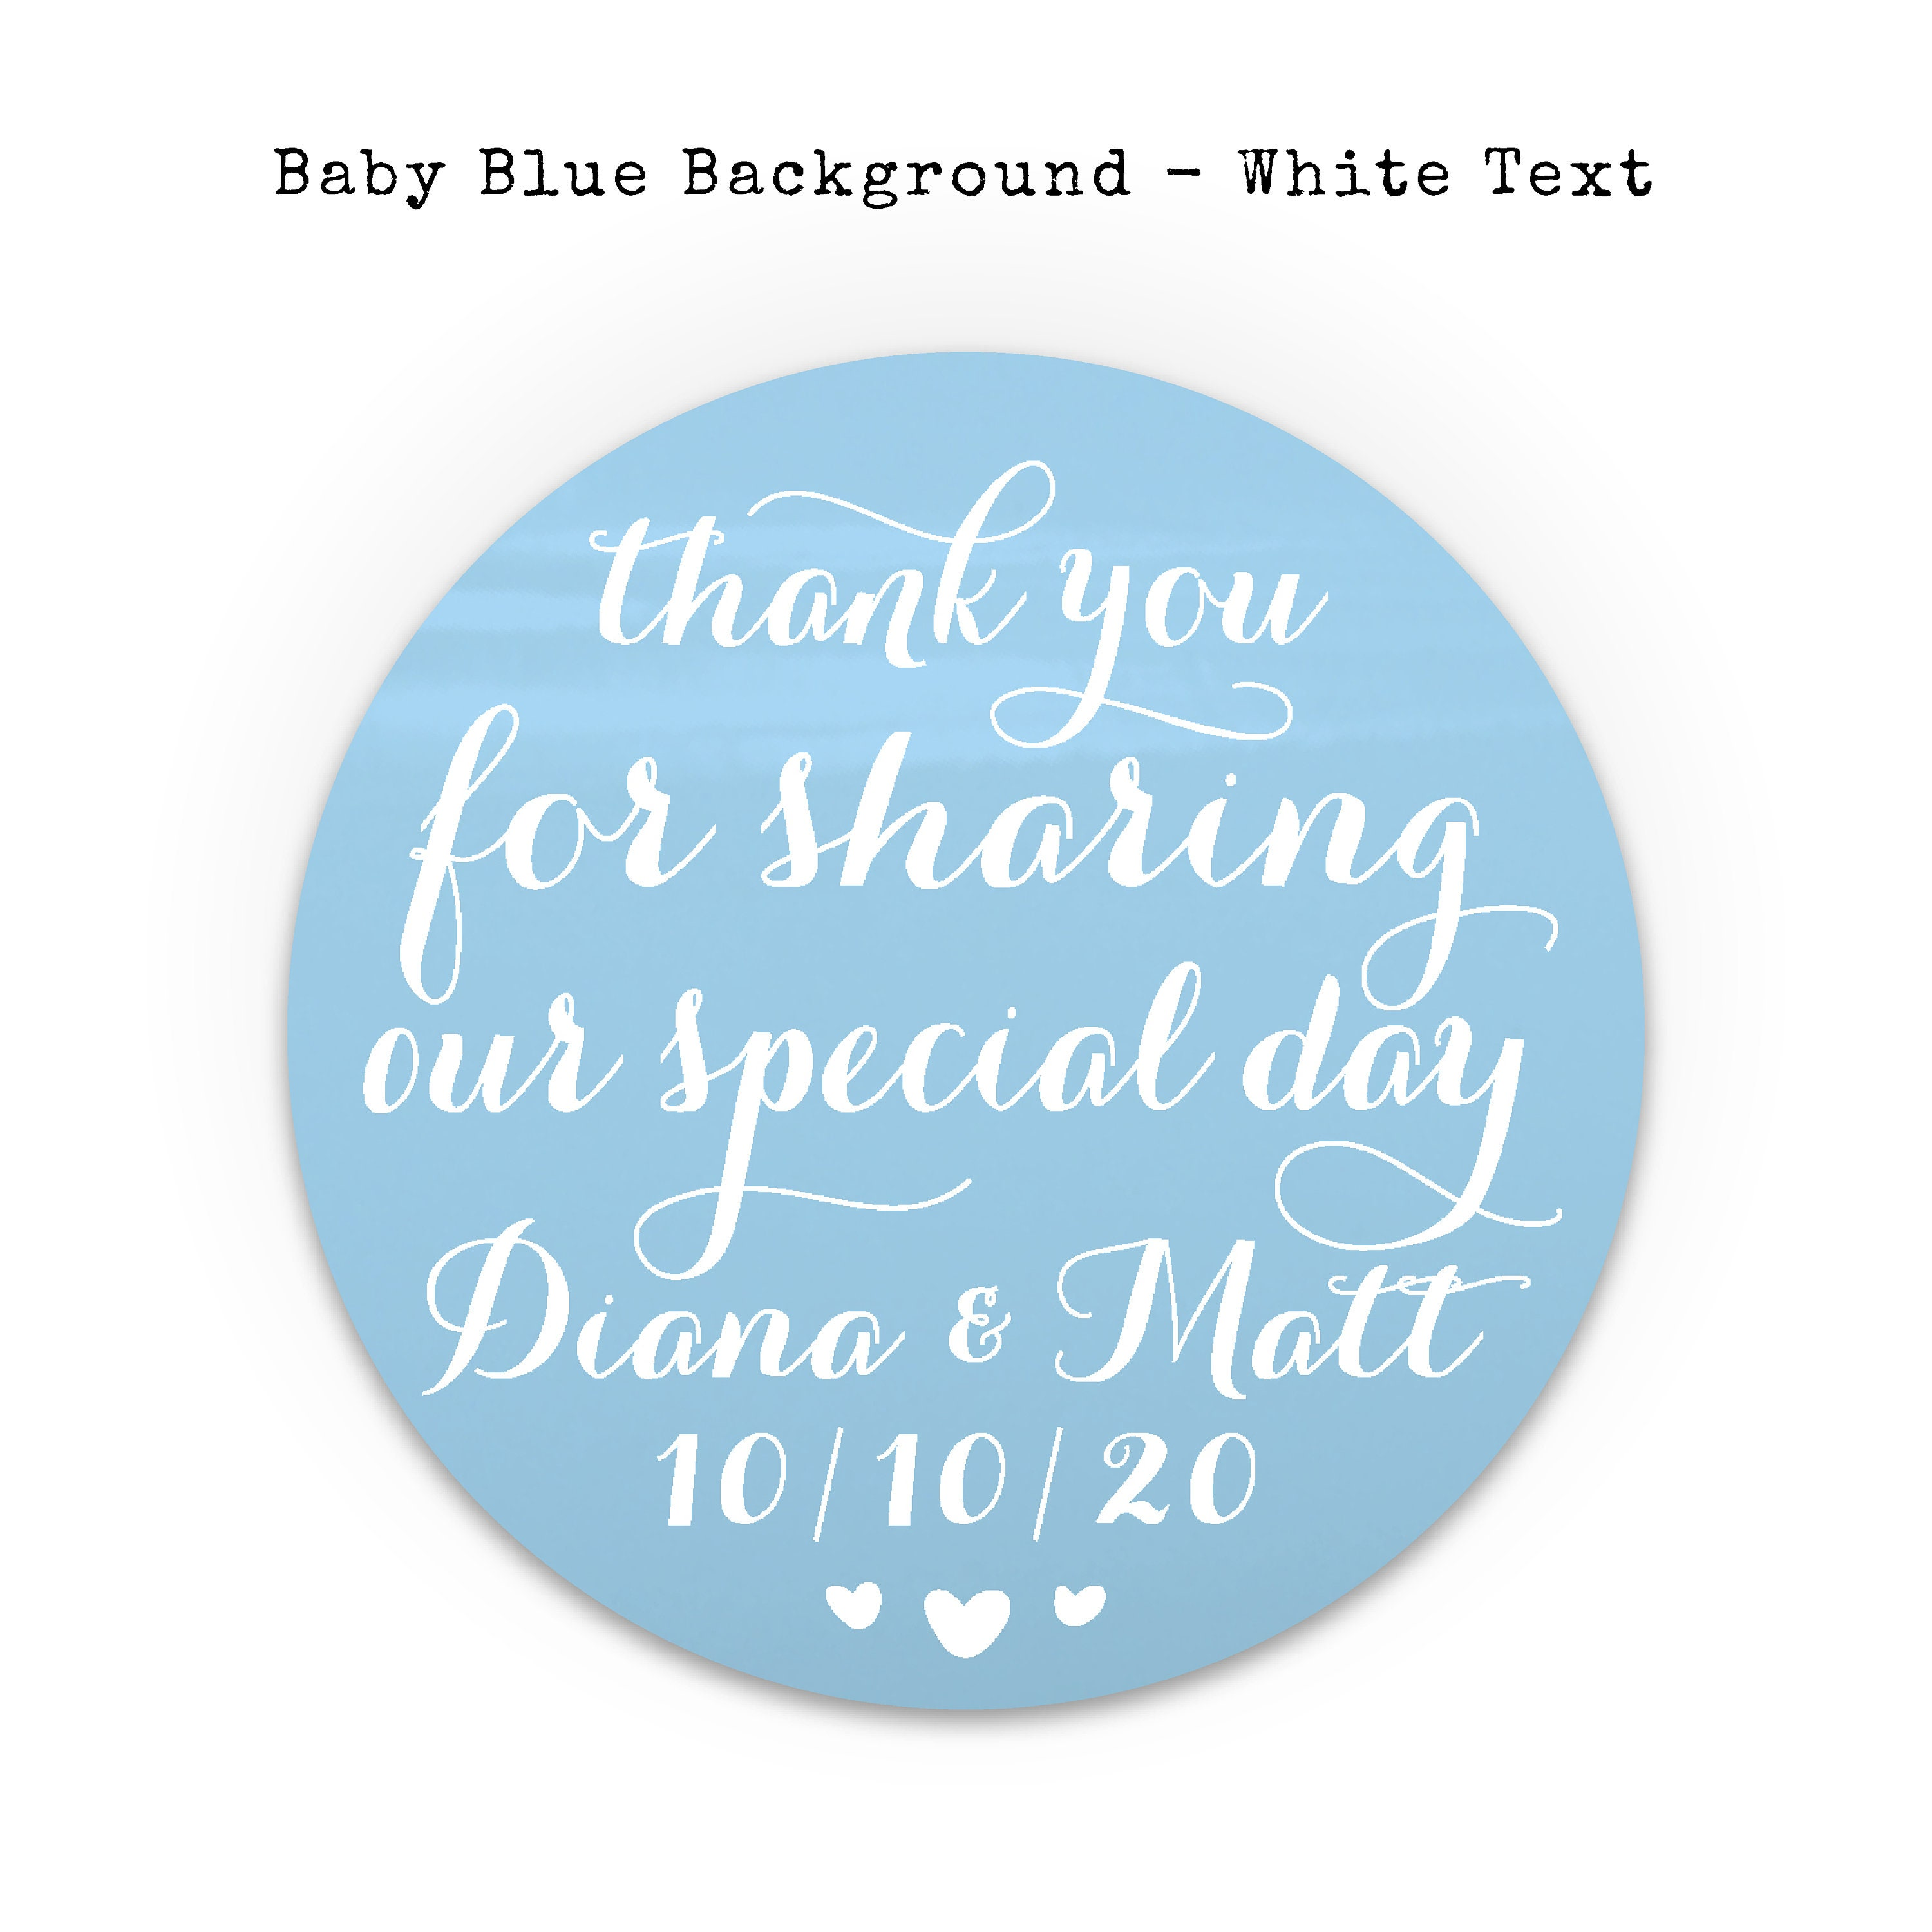 Personalised stickers wedding thank you stickers for favors wedding custom circle stickers labels personalized stickers wedding favors